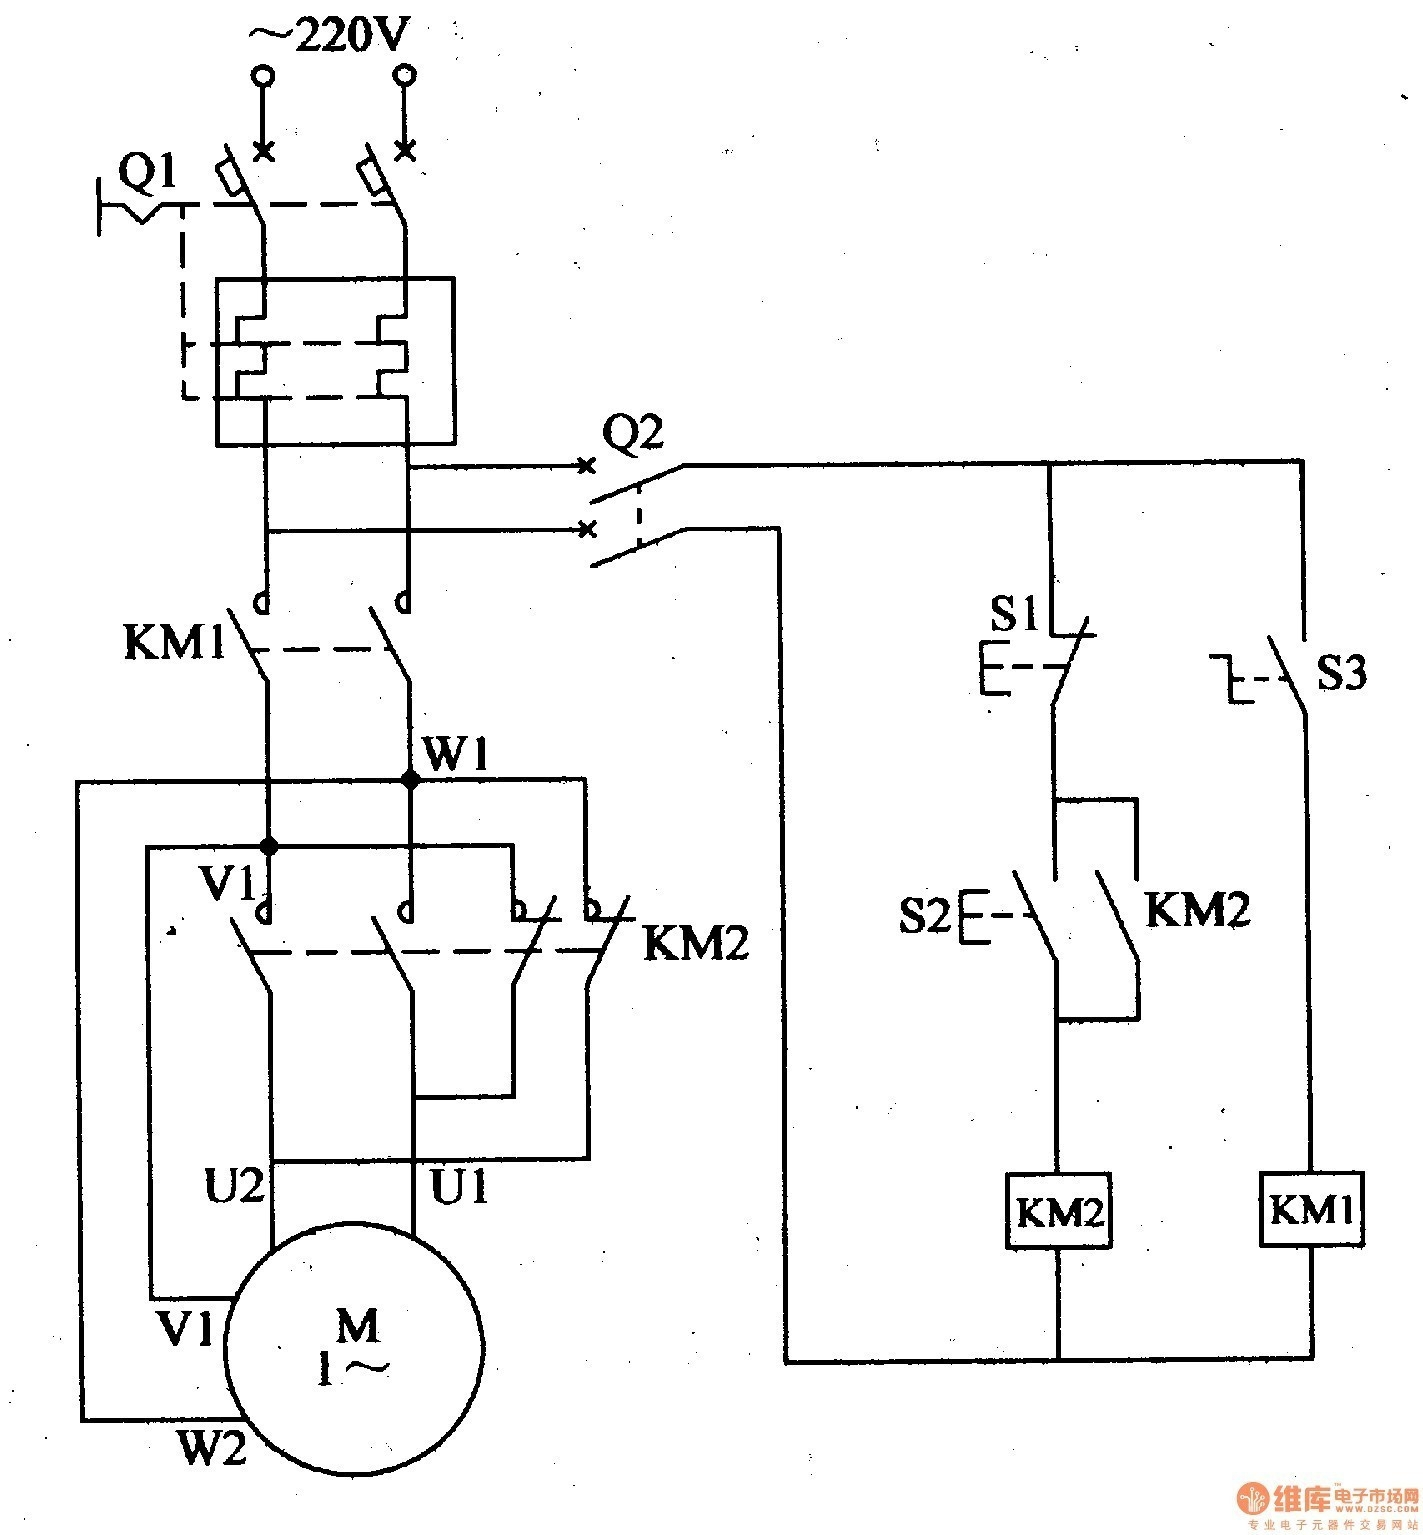 hight resolution of electric motor wiring diagram 220 to 110 cara kerja wiring diagram ac valid contemporary ac